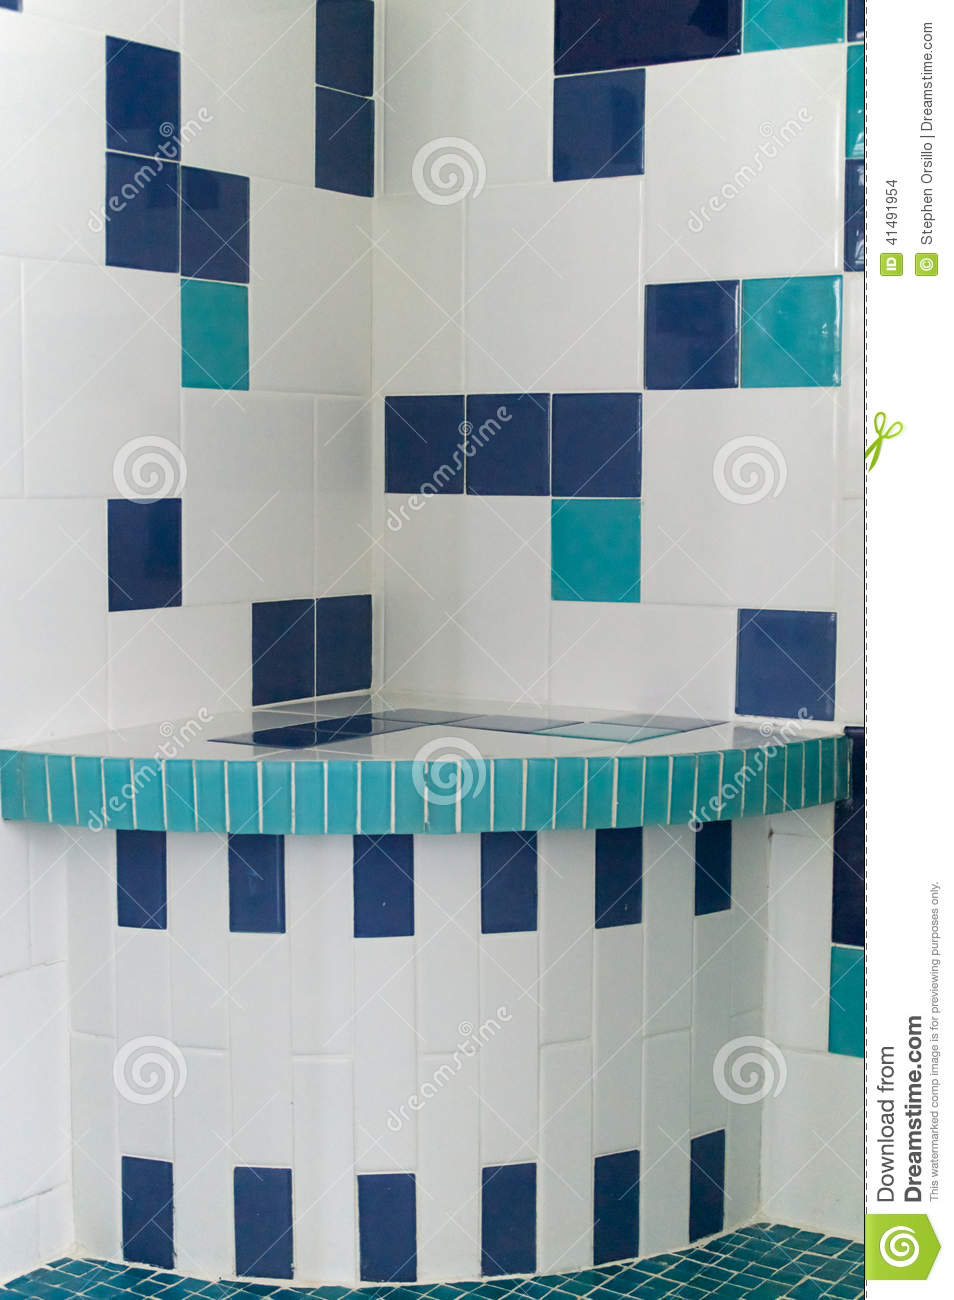 Blue and white shower tile stock photo. Image of bathroom - 41491954